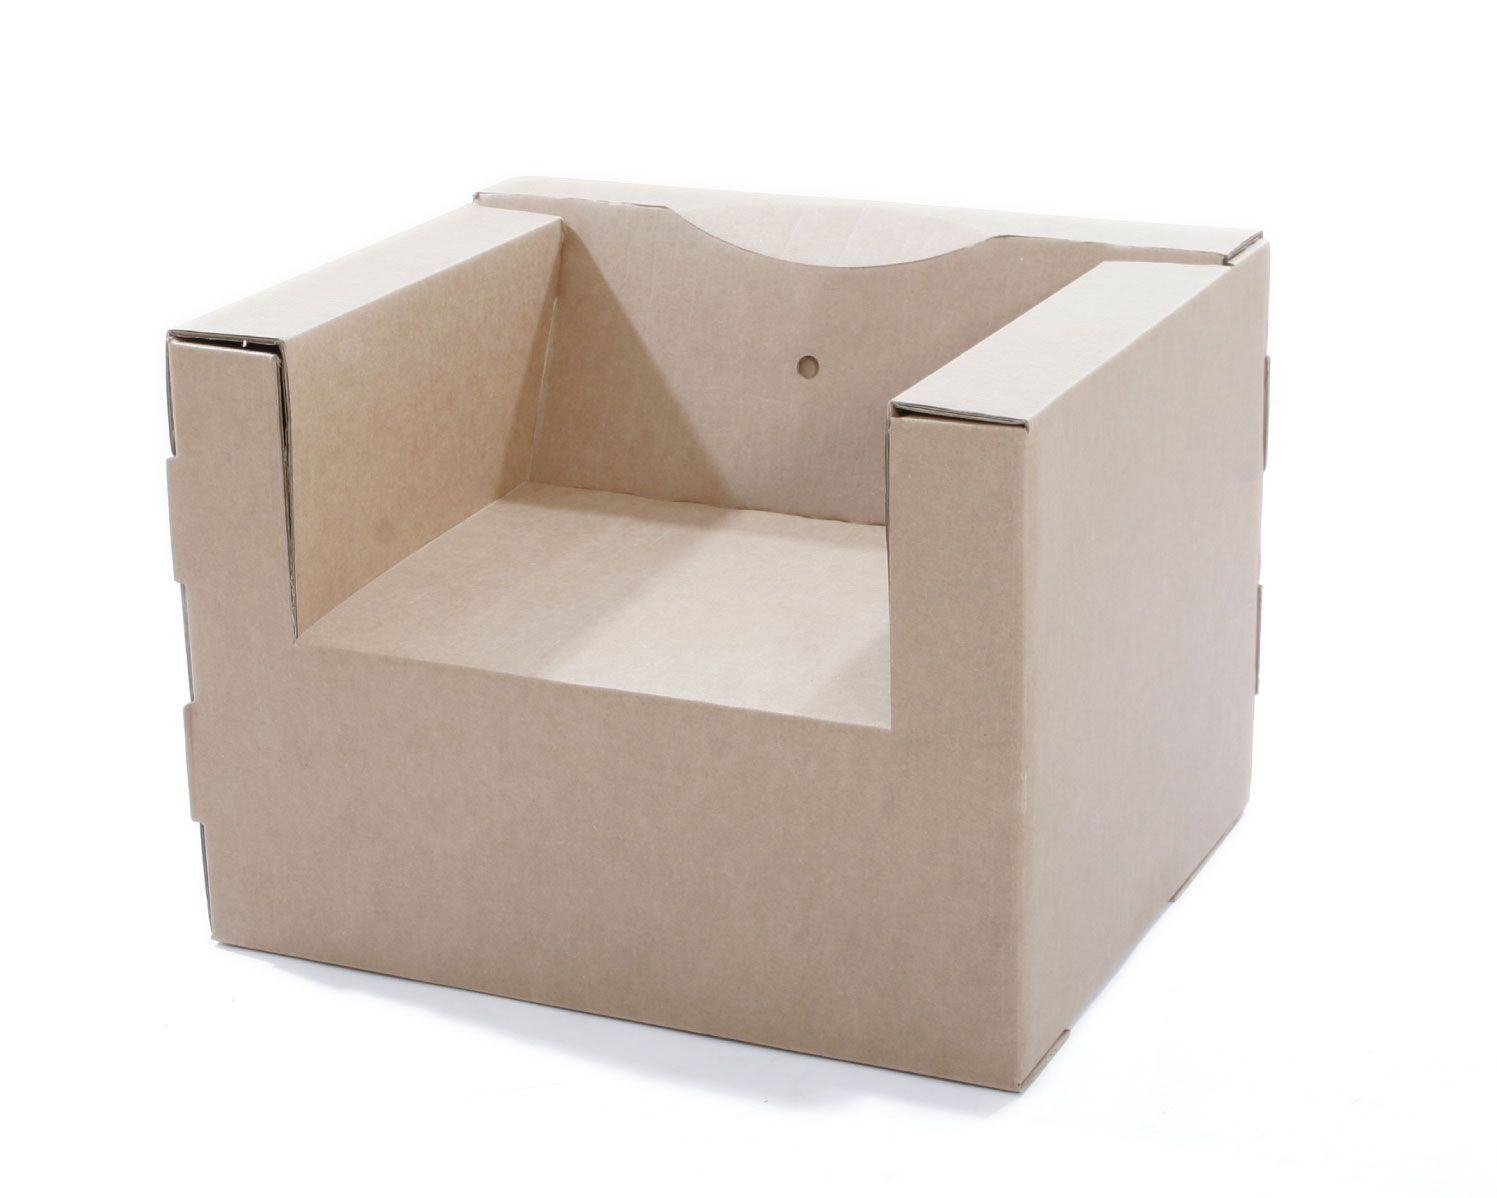 Cardboard rocking chair - Cardboard Chair